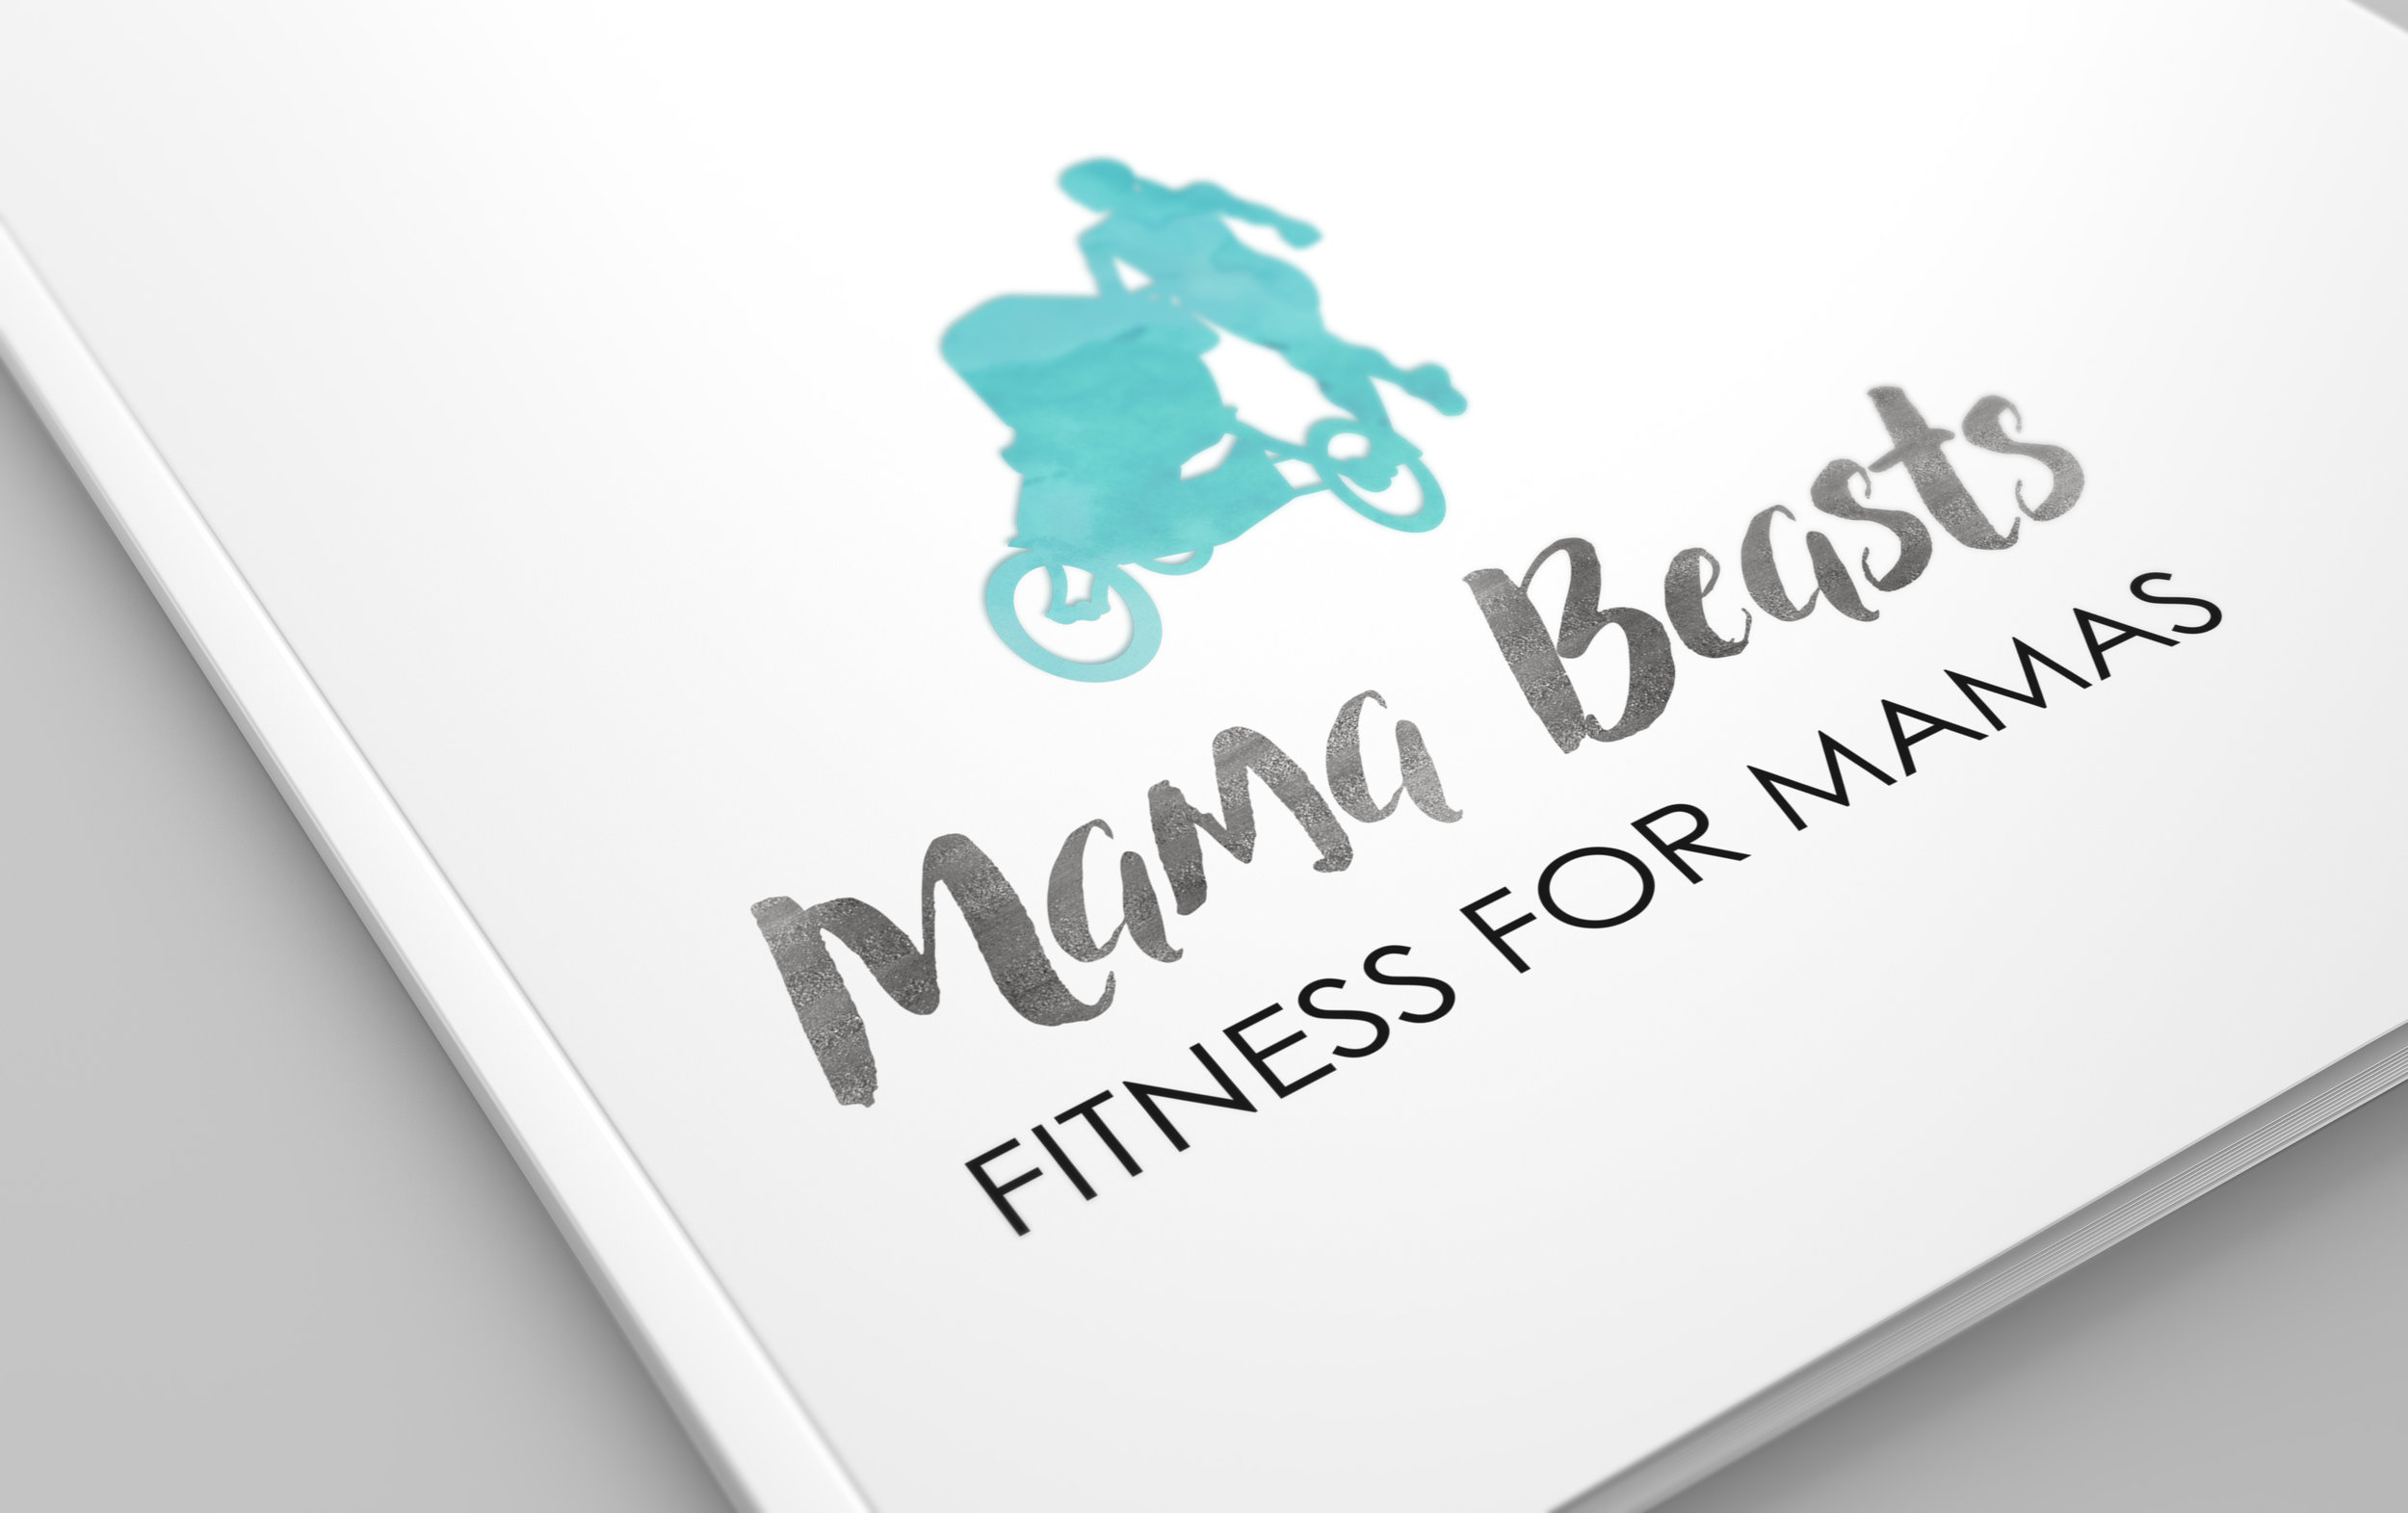 It's been years in the making. - We are proud to introduce The Mama Beasts Licensing Program — a comprehensive plan and mentorship that guides moms to create an inspiring community and thriving business.Are you a mom who values having a tribe during these turbulent years? Are you looking for an outlet for ambition and creativity? Are you looking for a flexible job that truly fits into motherhood? Do you have an interest in fitness, wellness, and emotional health when it comes to women and mothers? Are you limited for time (ha!) but also craving direction and use of your talents? Are you already a certified fitness professional? Or does the idea of becoming one excites you? The Mama Beasts Licensing Program could be right for you.